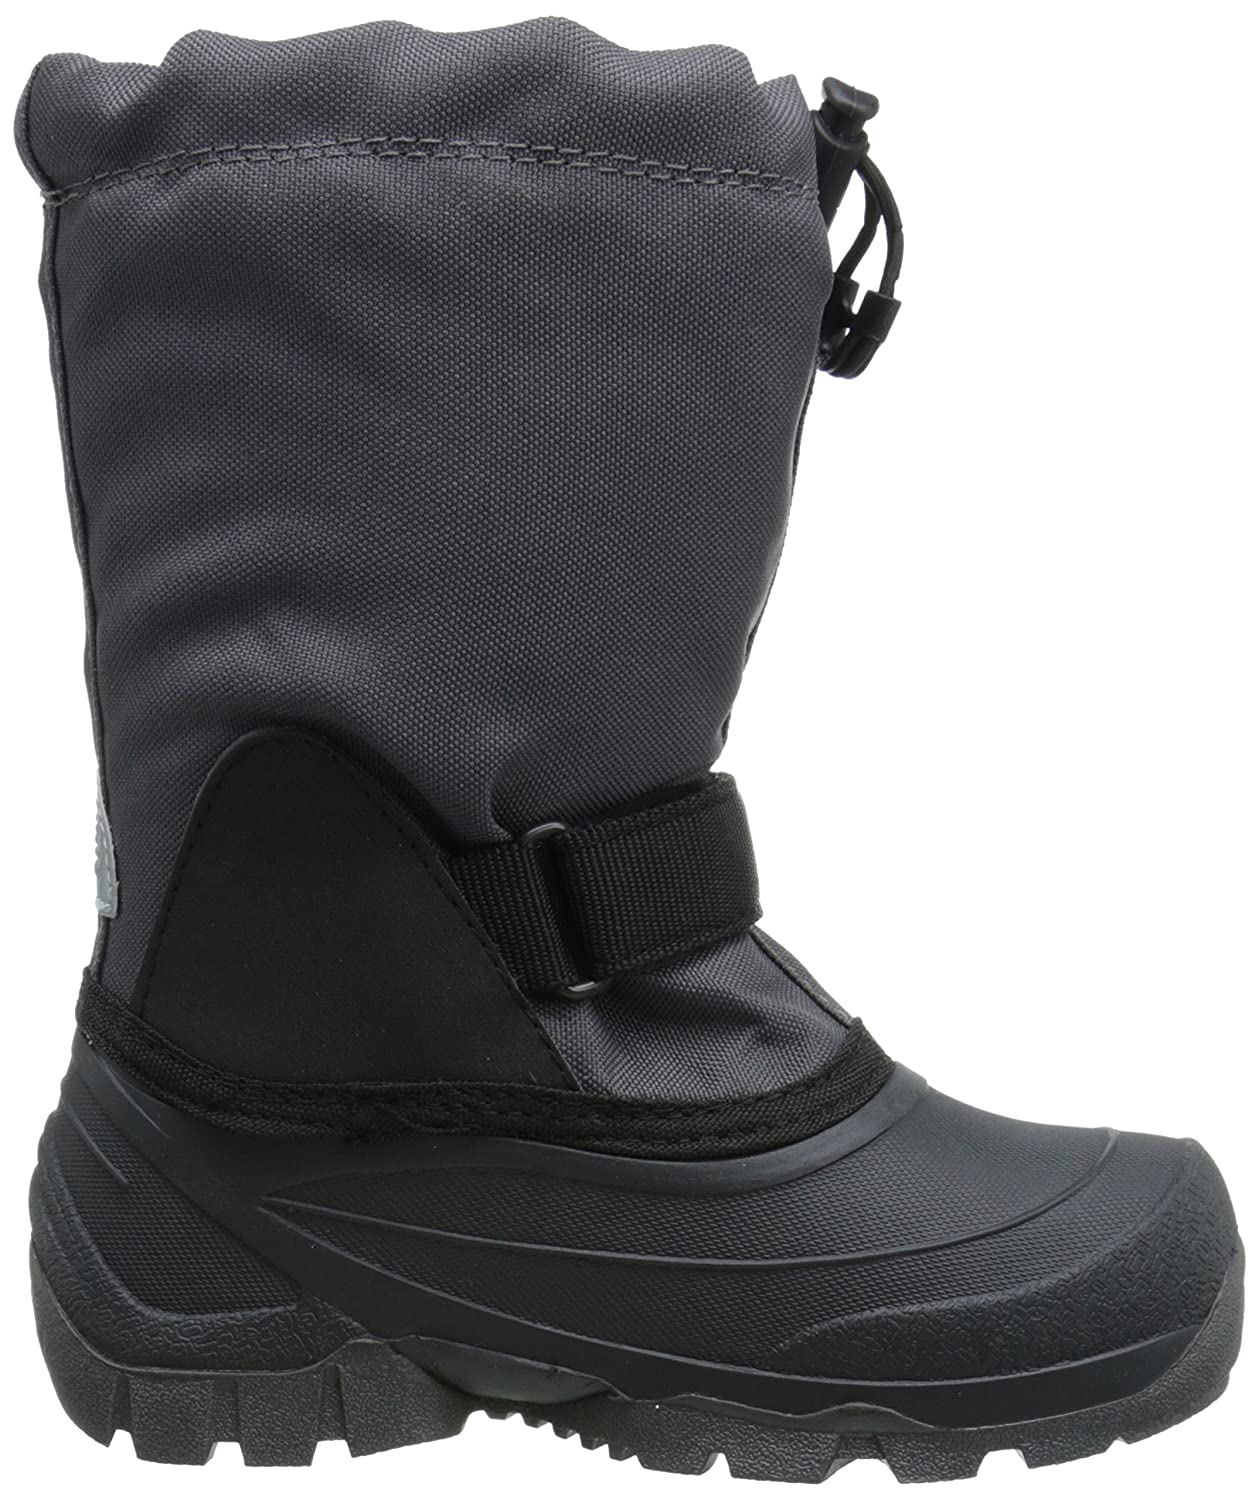 Kamik Snoday Winter Winter Winter Stiefel (Toddler Little Kid Big Kid) f276f7